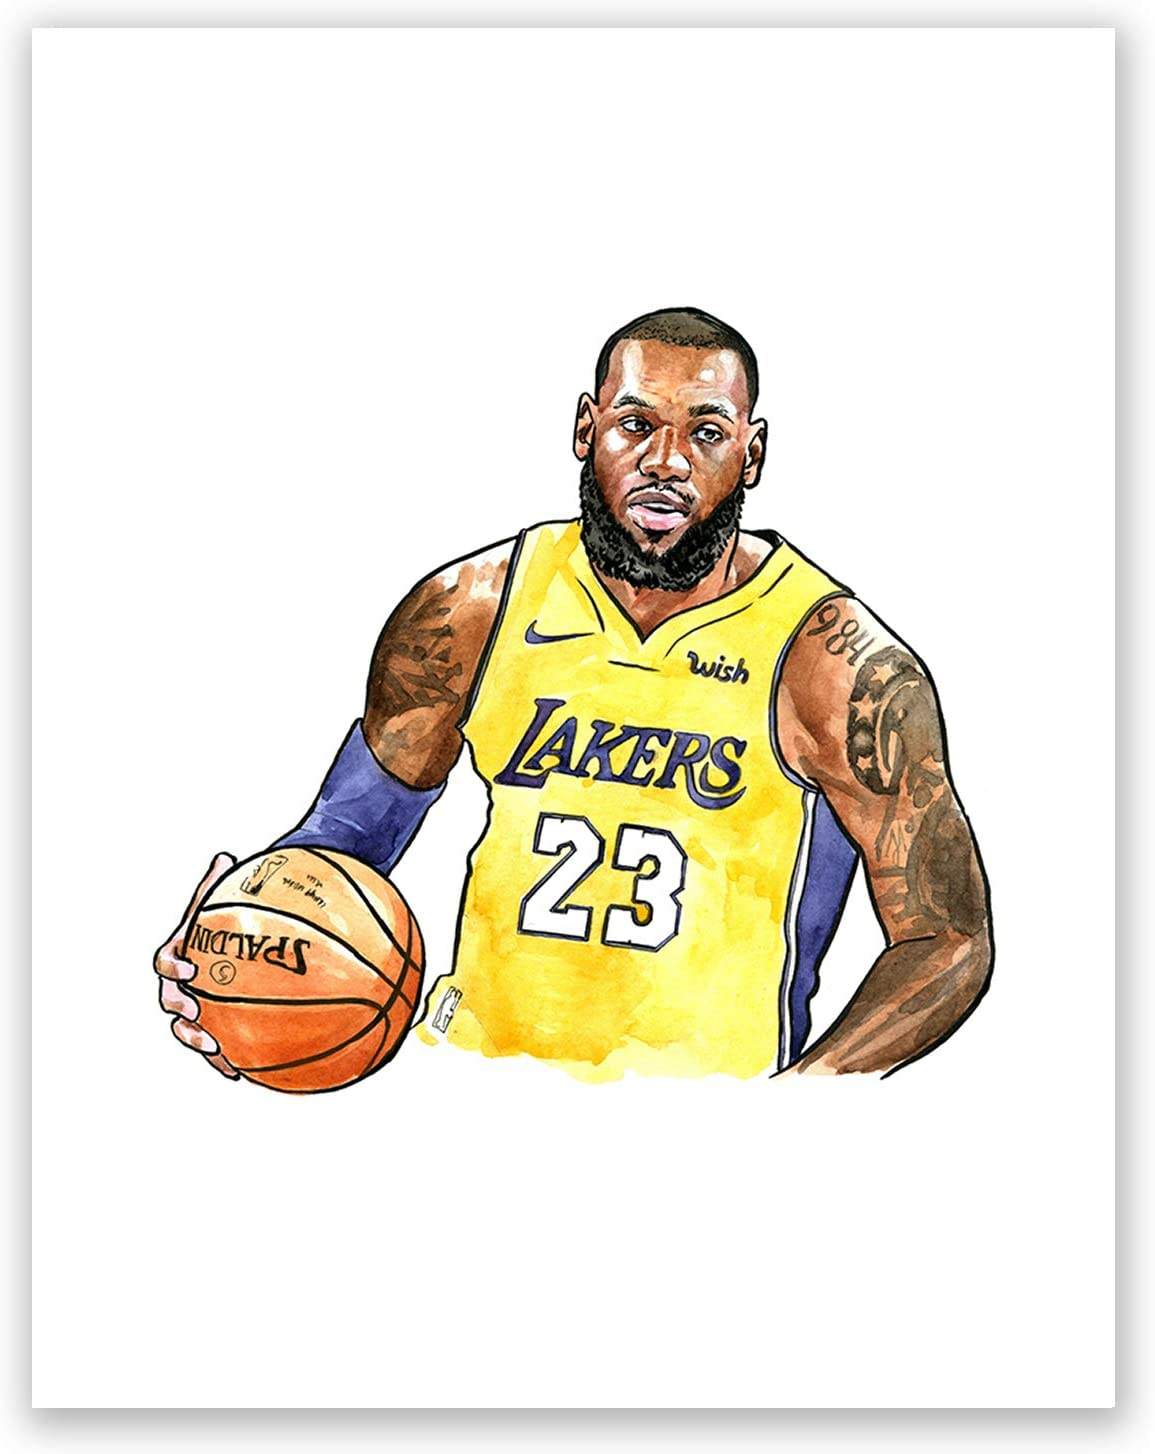 Amazon Com A48 Lebron James Poster Art Poprtrait Basketball Player Legends Picture Print Sport Lakers Home Bedroom Wall Decor Picture 8x10 Posters Prints